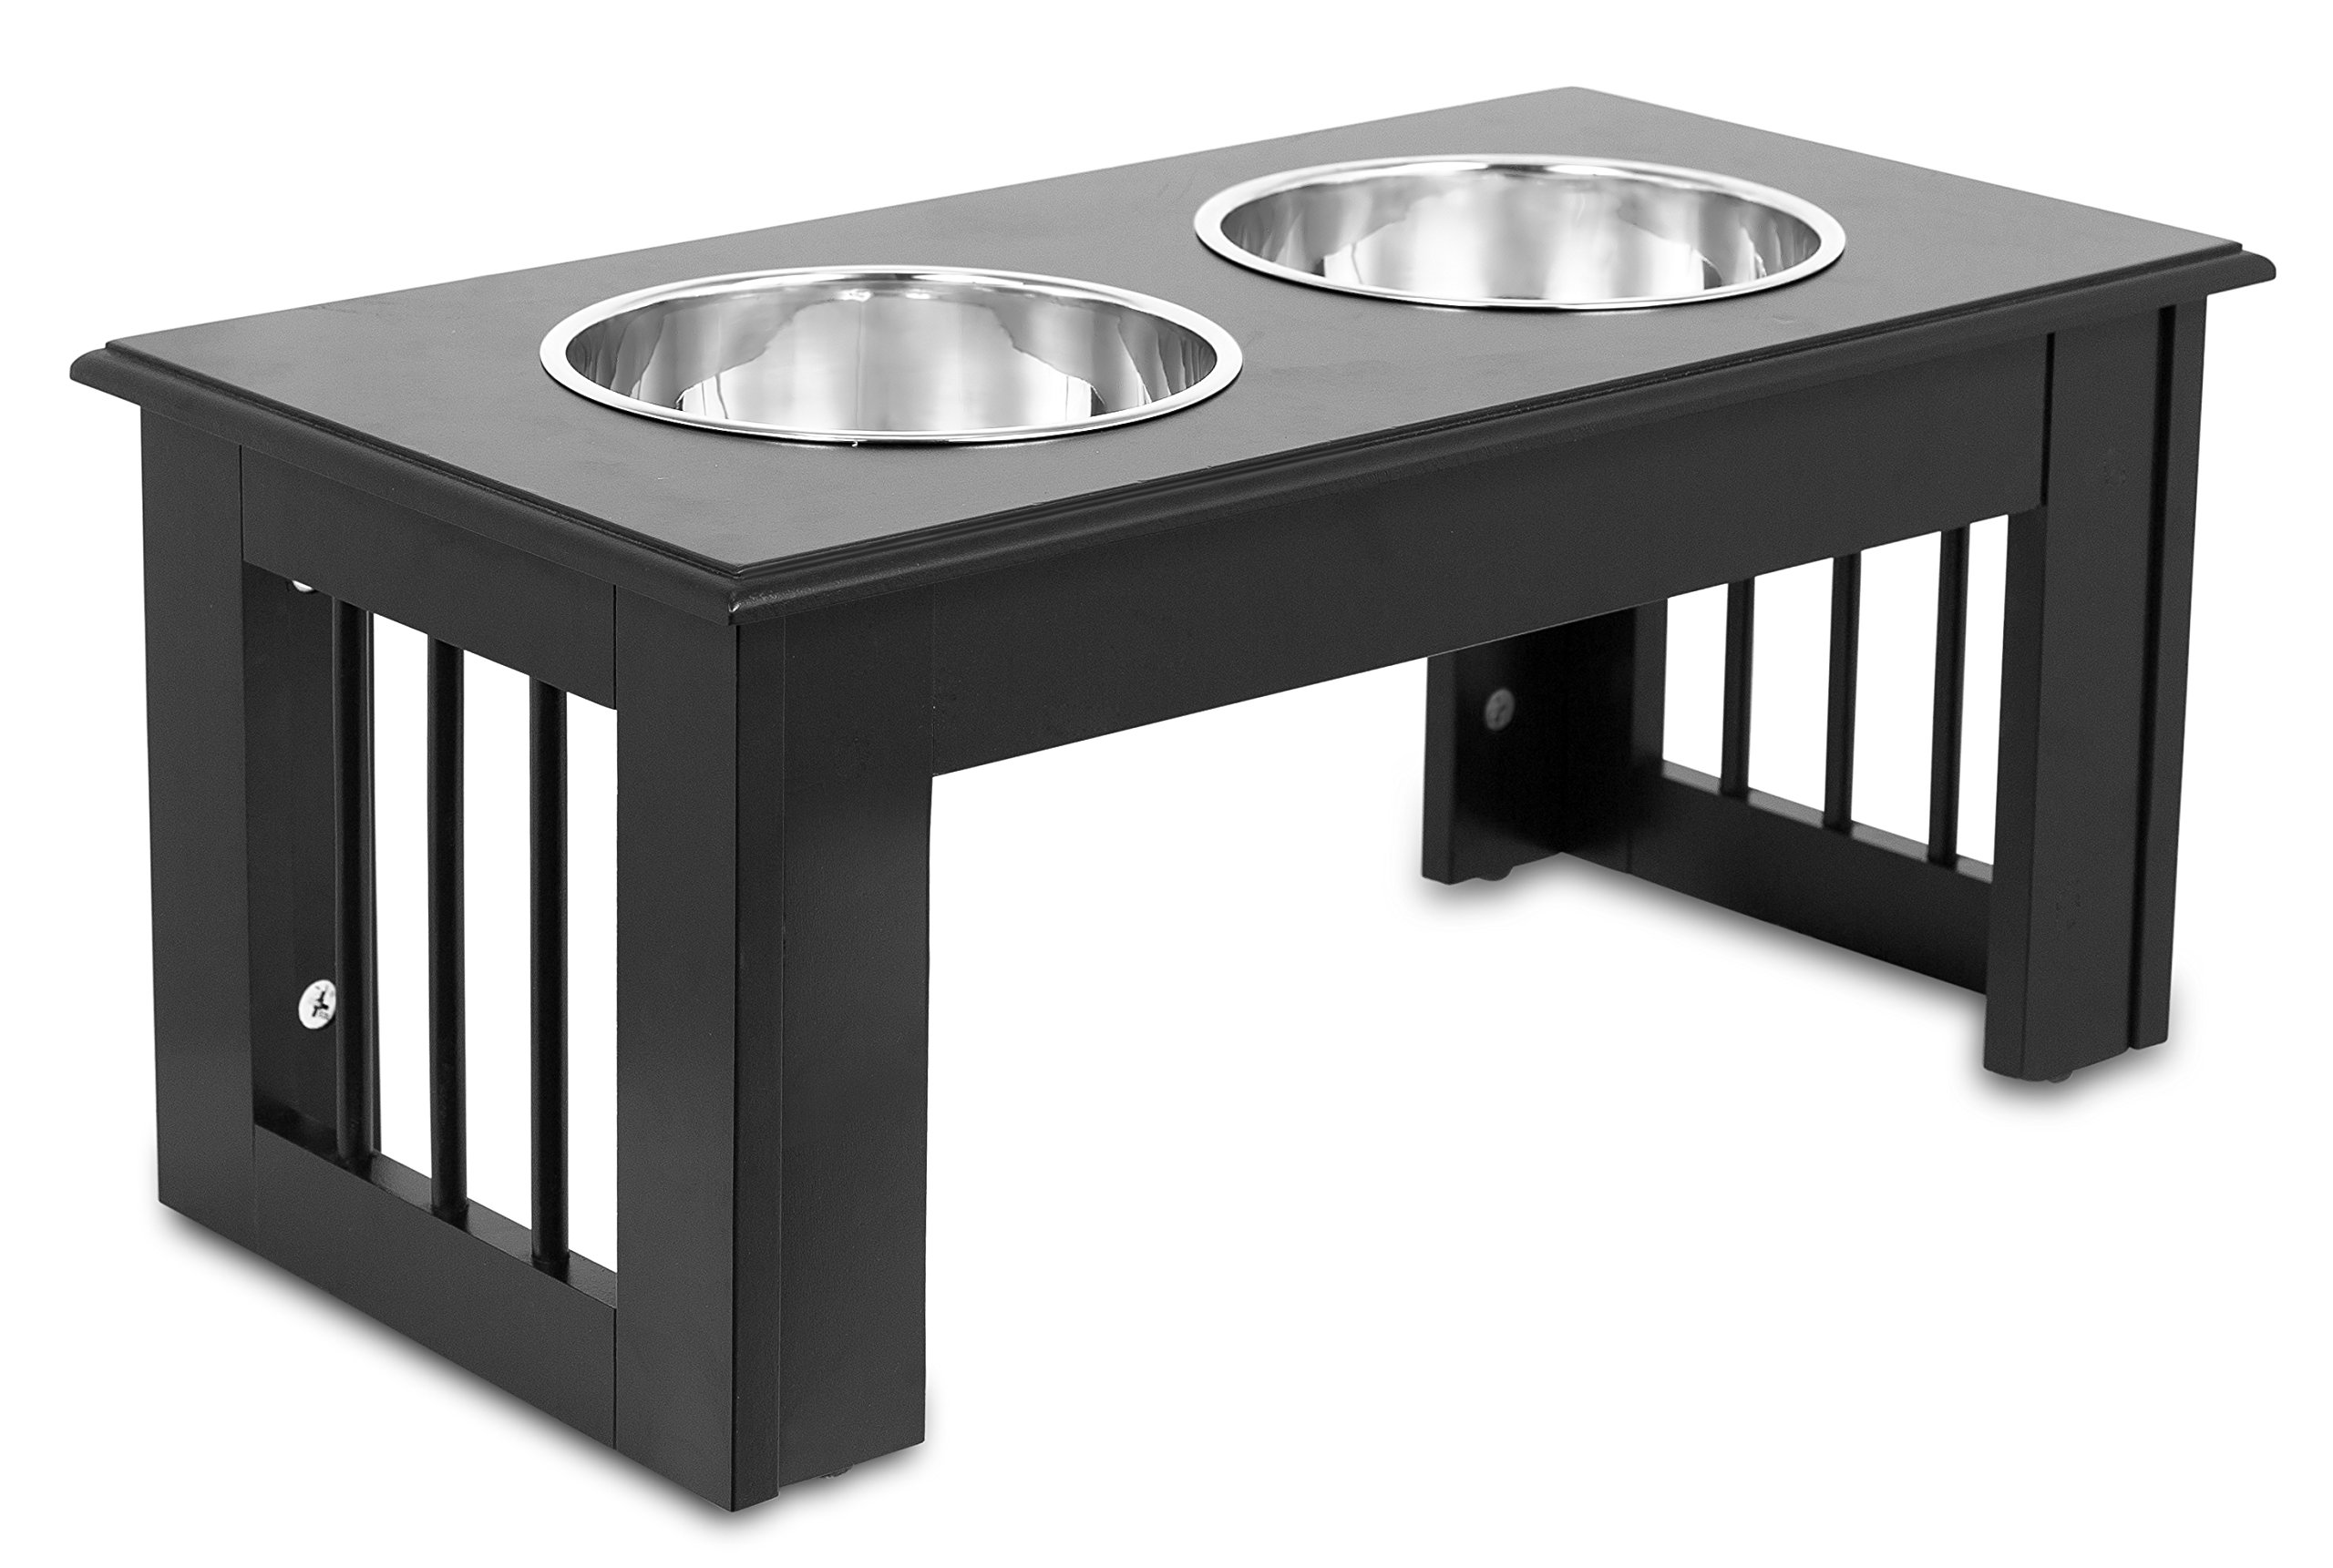 Internet's Best Traditional Elevated Pet Feeder | 2 Medium Dog Bowls | Decorative Raised Stand with Double Stainless Steel Bowls | Espresso